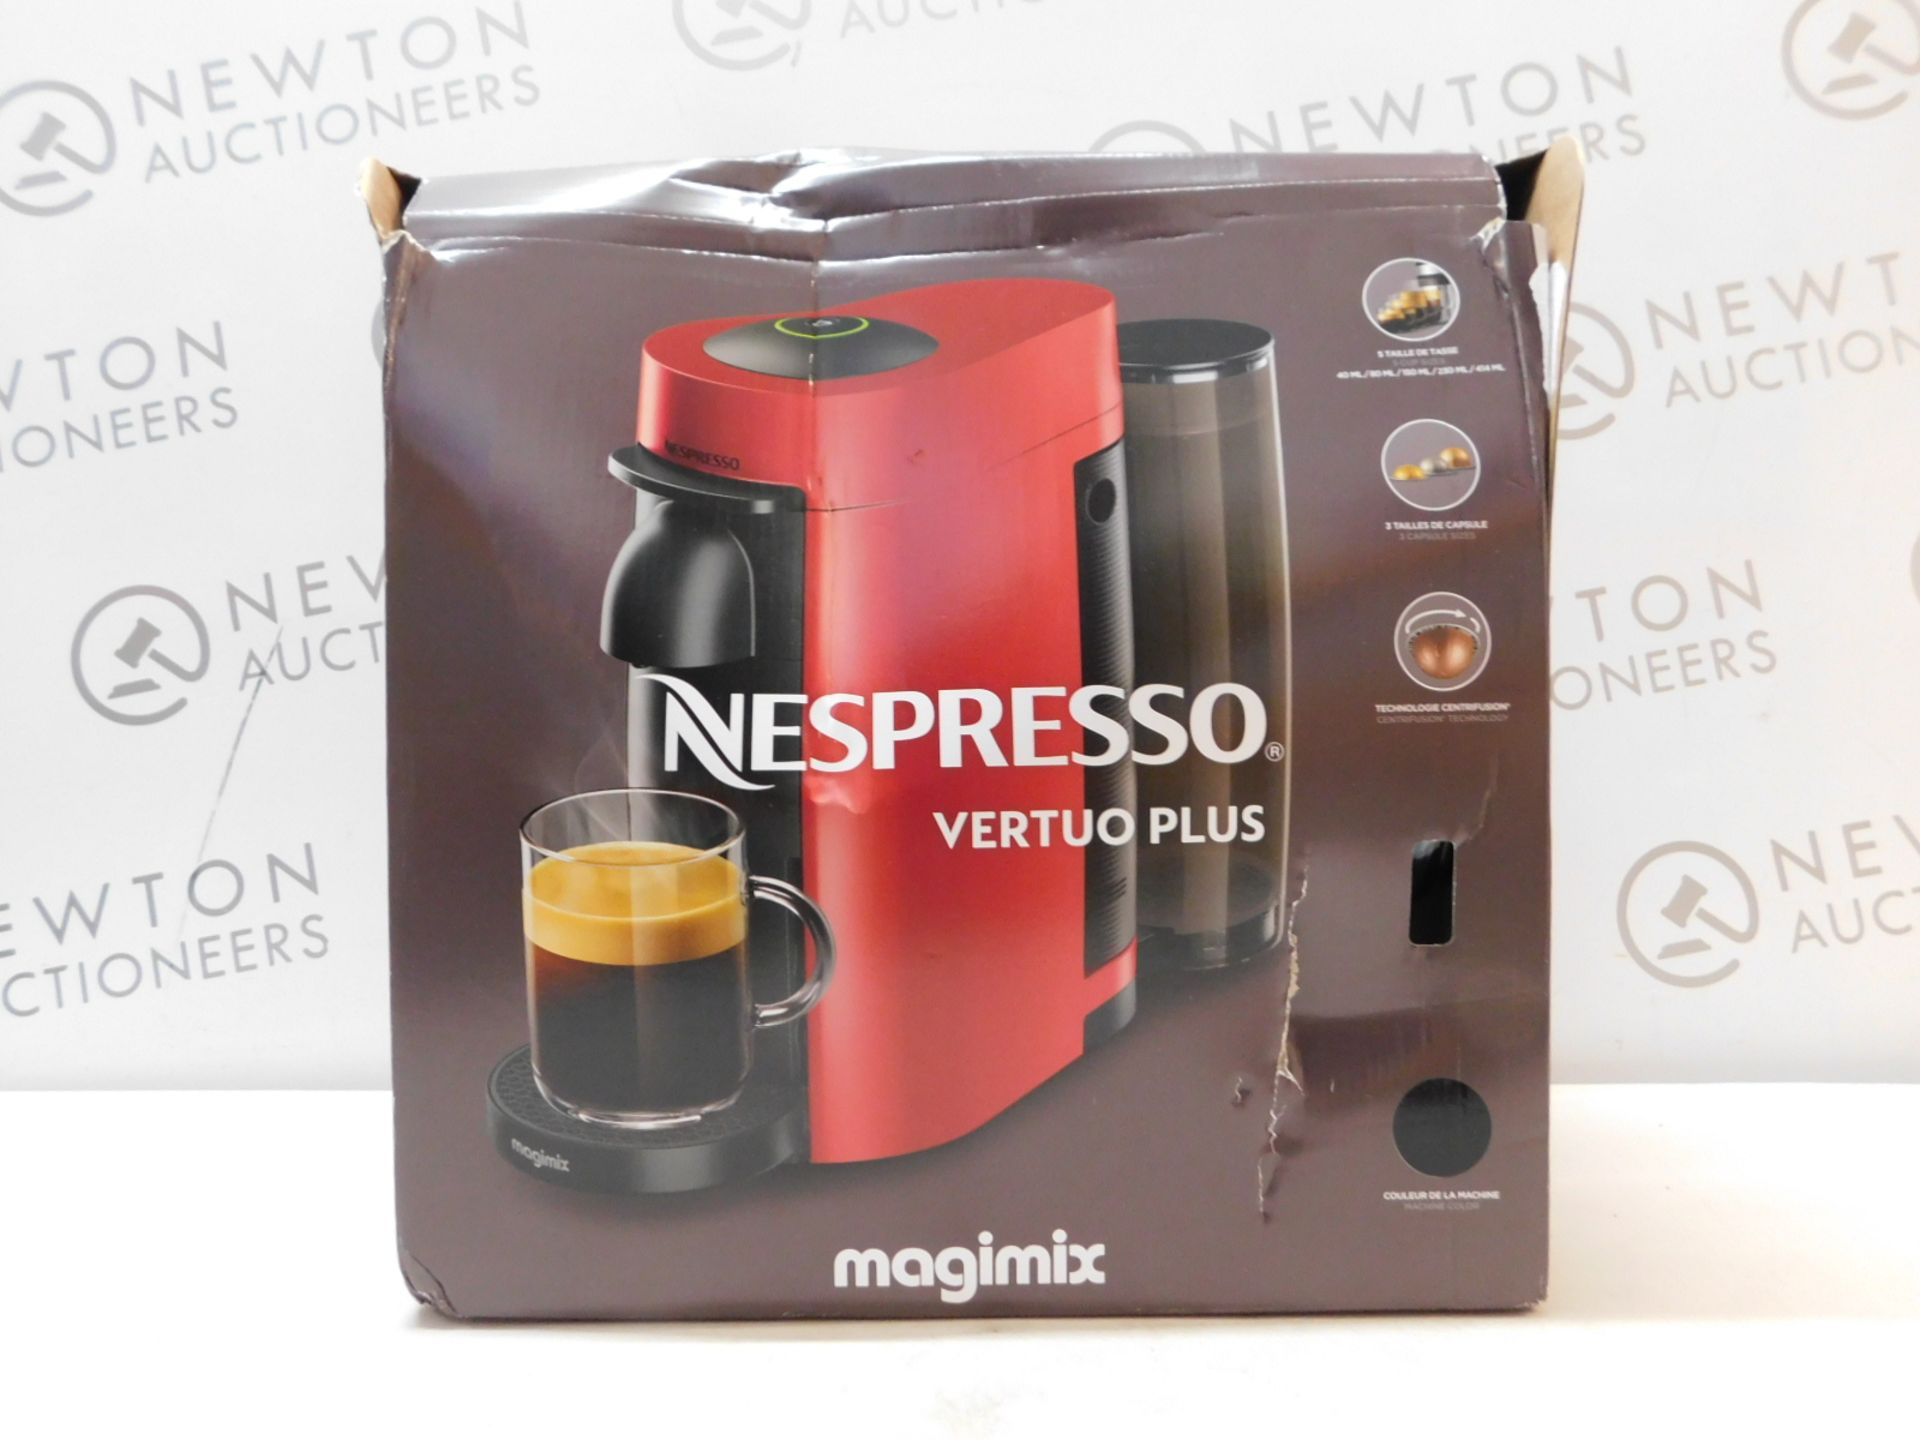 1 BOXED NESPRESSO VERTUO PLUS 11399 COFFEE MACHINE BY MAGIMIX RRP £129